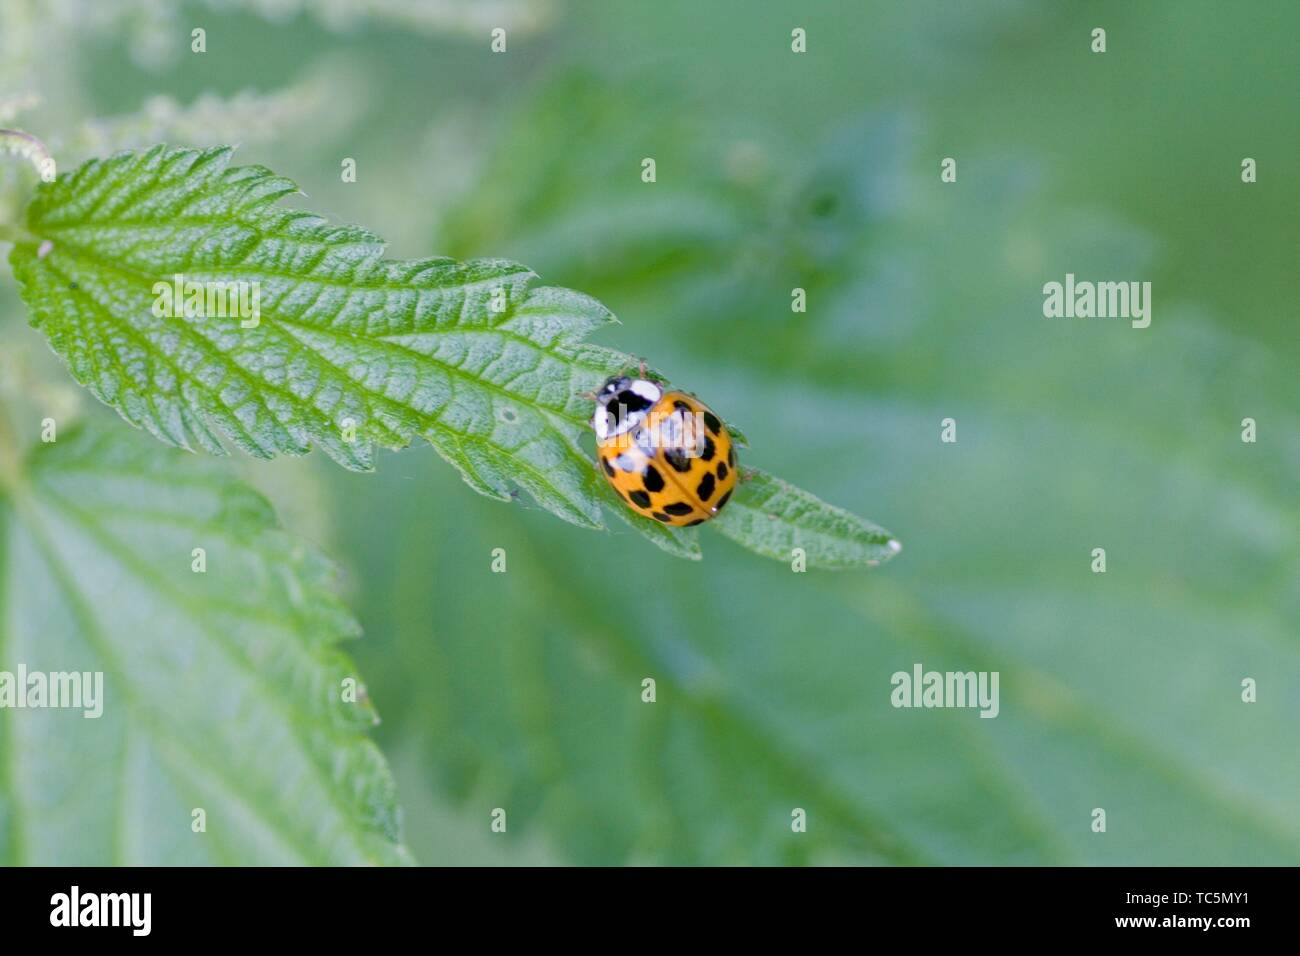 Harlequin Ladybird pupae, Harmonia axyridis, large ladybird which have multiple colora variations with dots 0-22. Most common form is red or orange Stock Photo